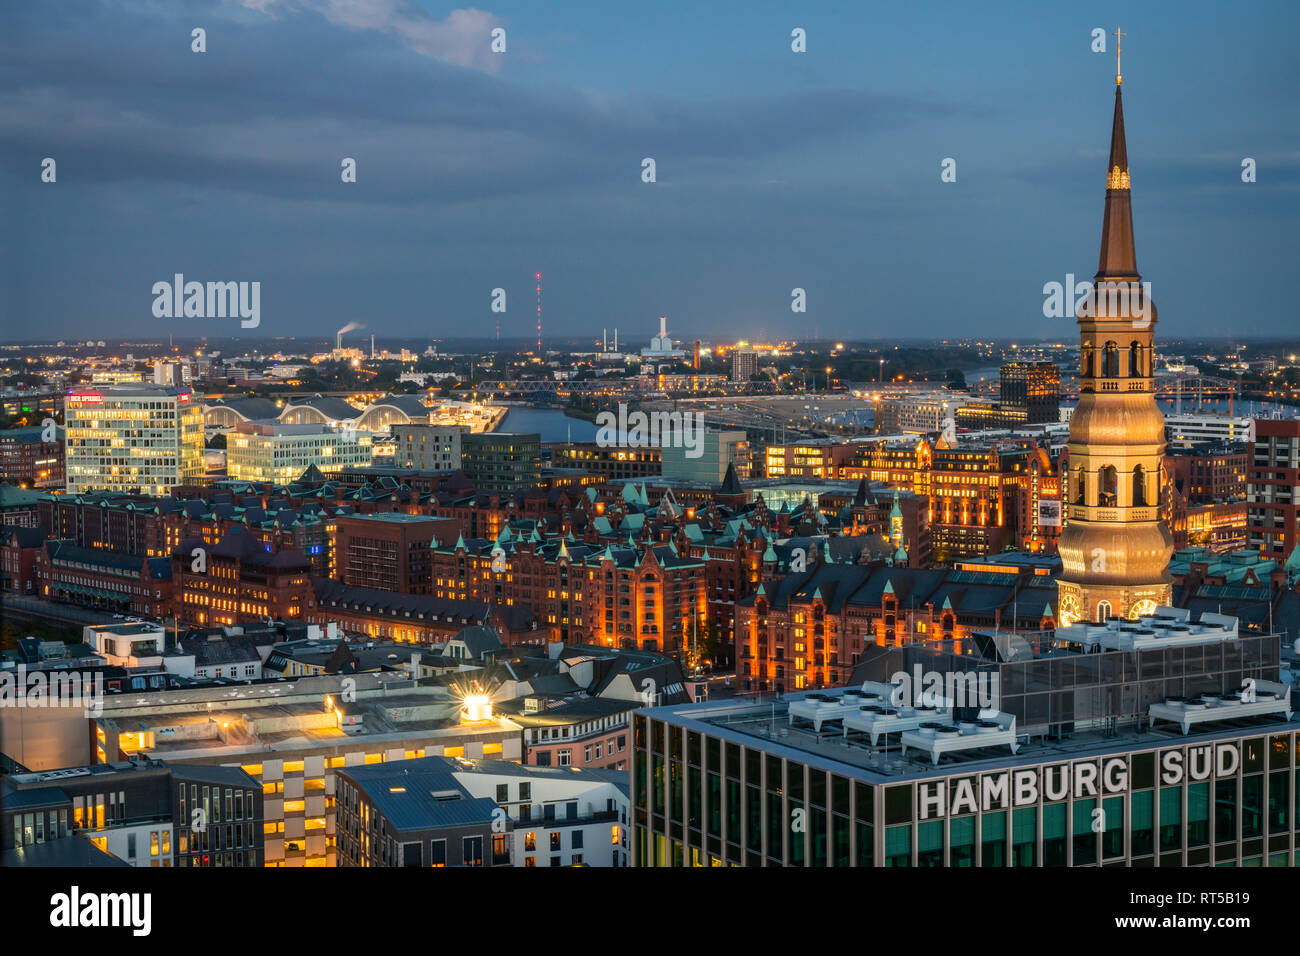 Quilt House Hamburg St Jacobs Stock Photos & St Jacobs Stock Images - Alamy